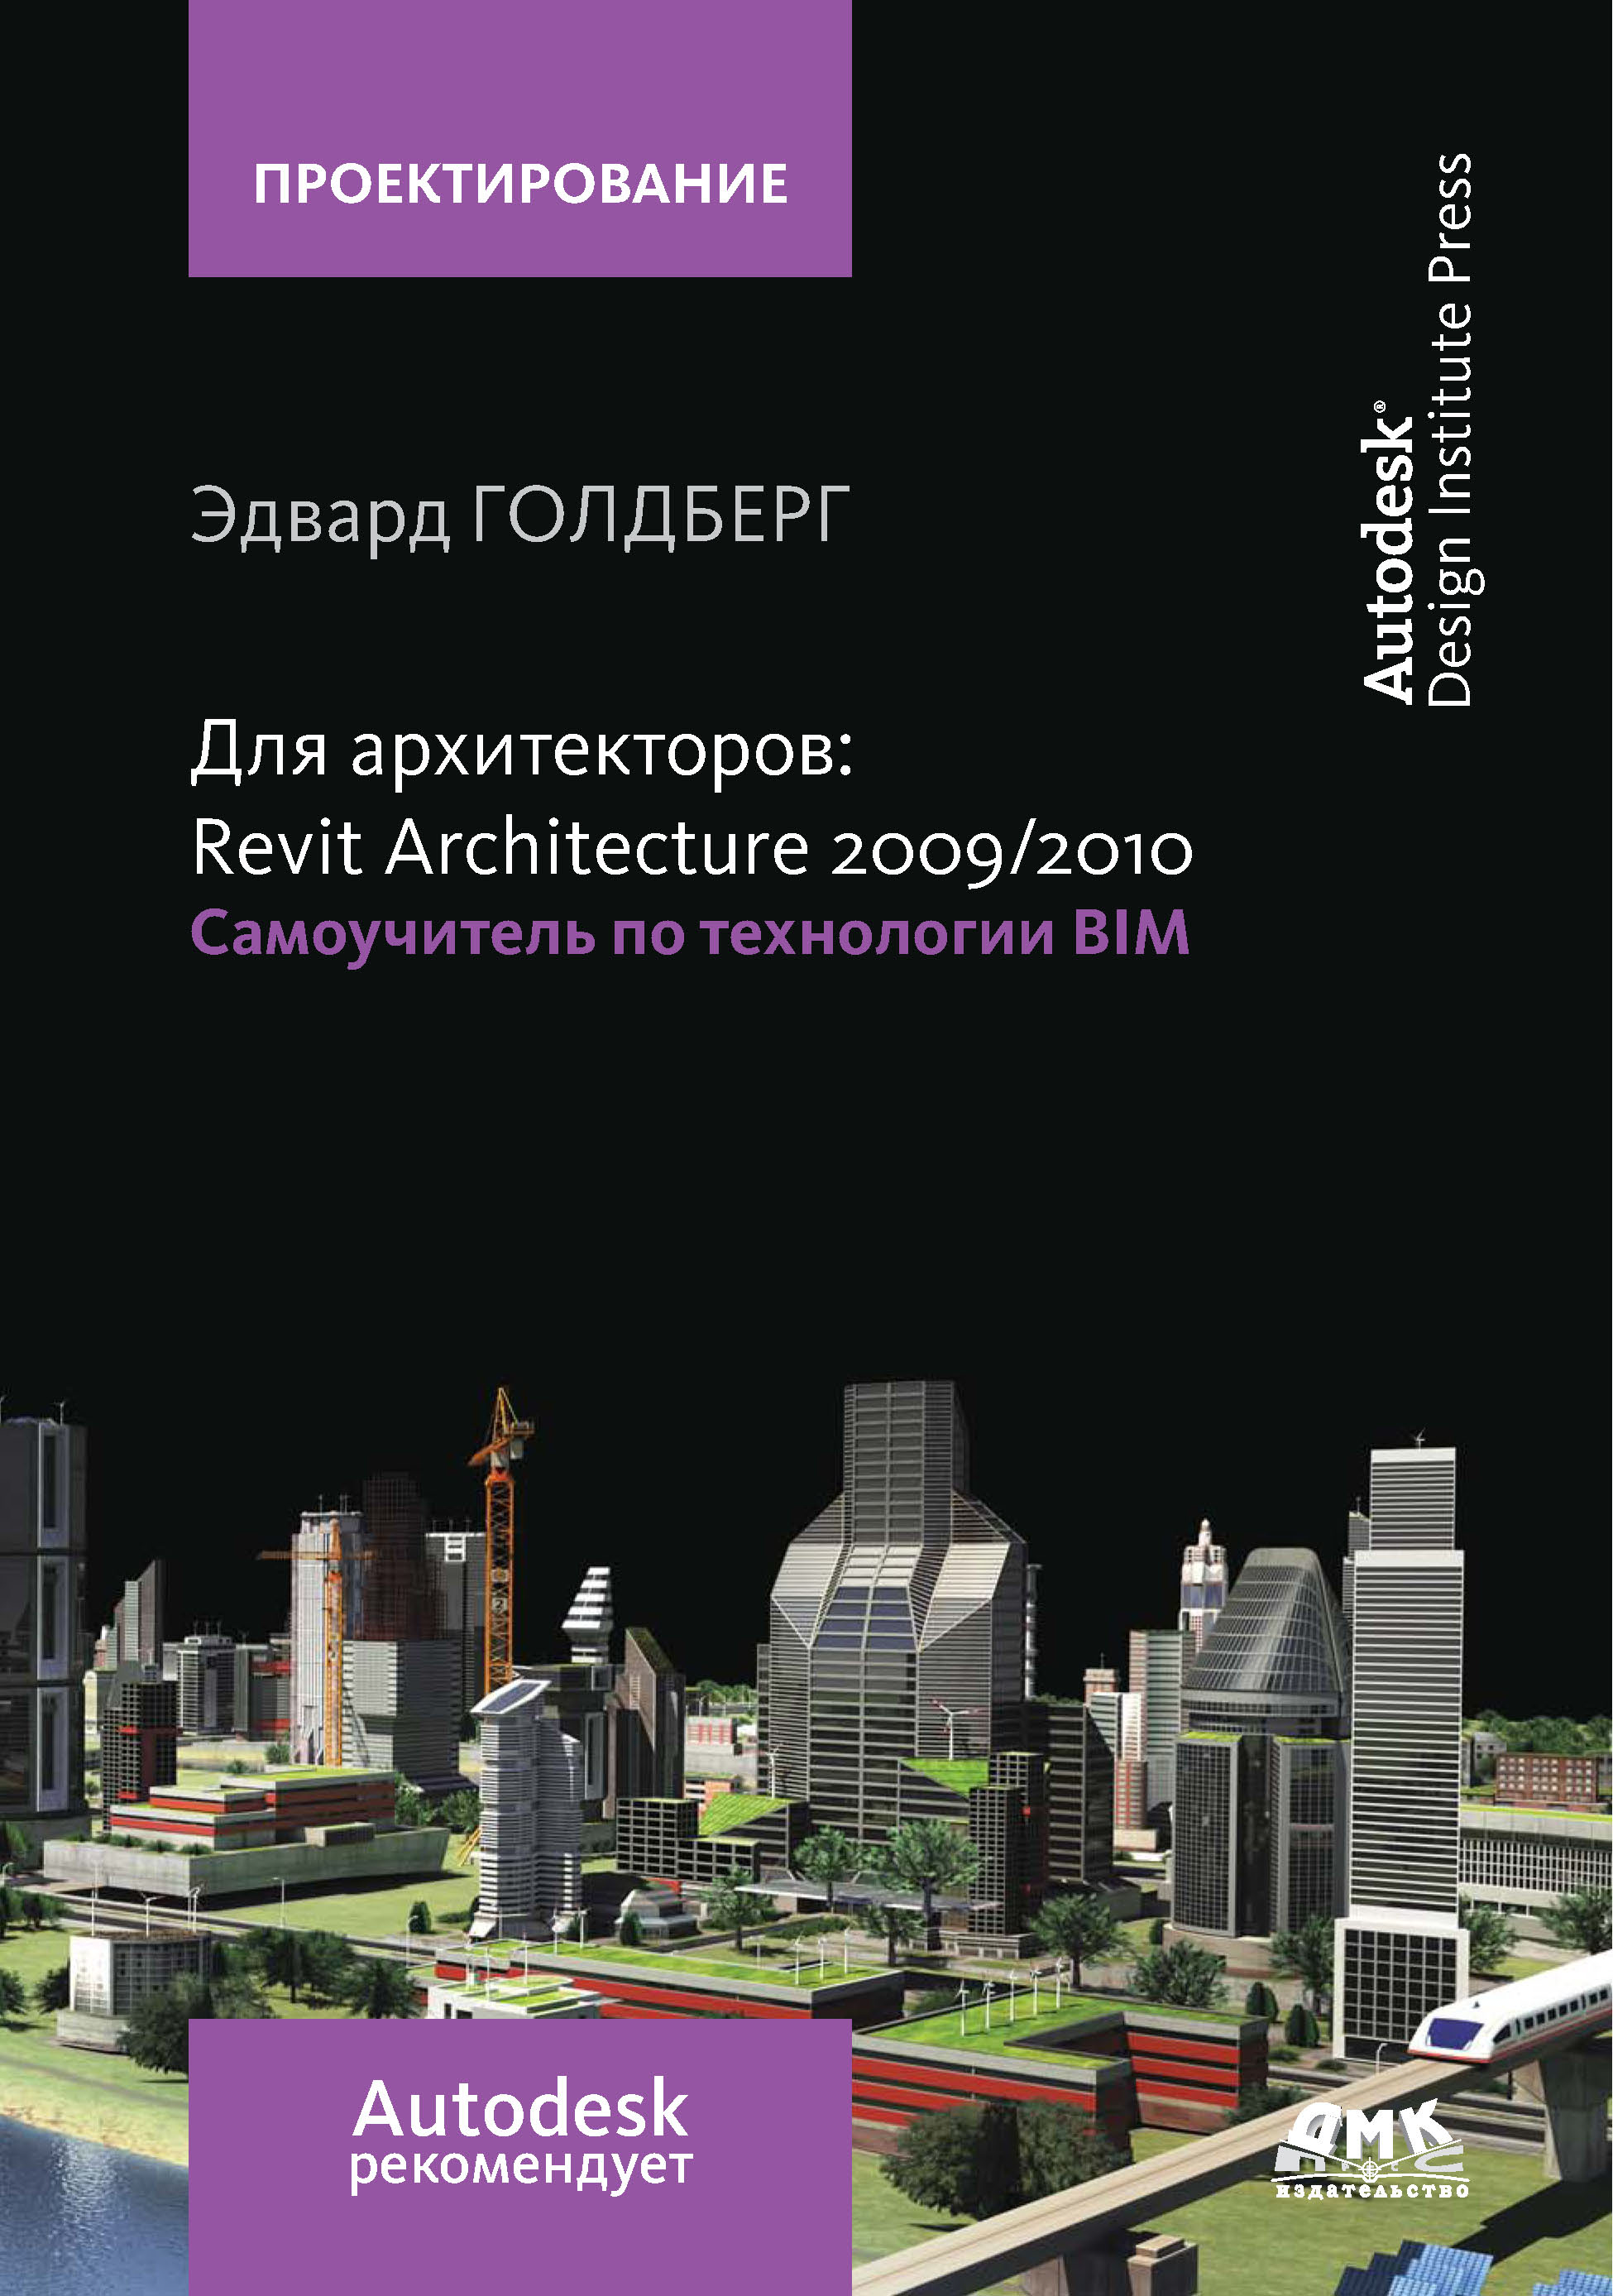 Эдвард Голдберг Для архитекторов: Revit Architecture 2009/2010. Самоучитель по технологии BIM hasbro пони с блестками my little pony b0357 b3222